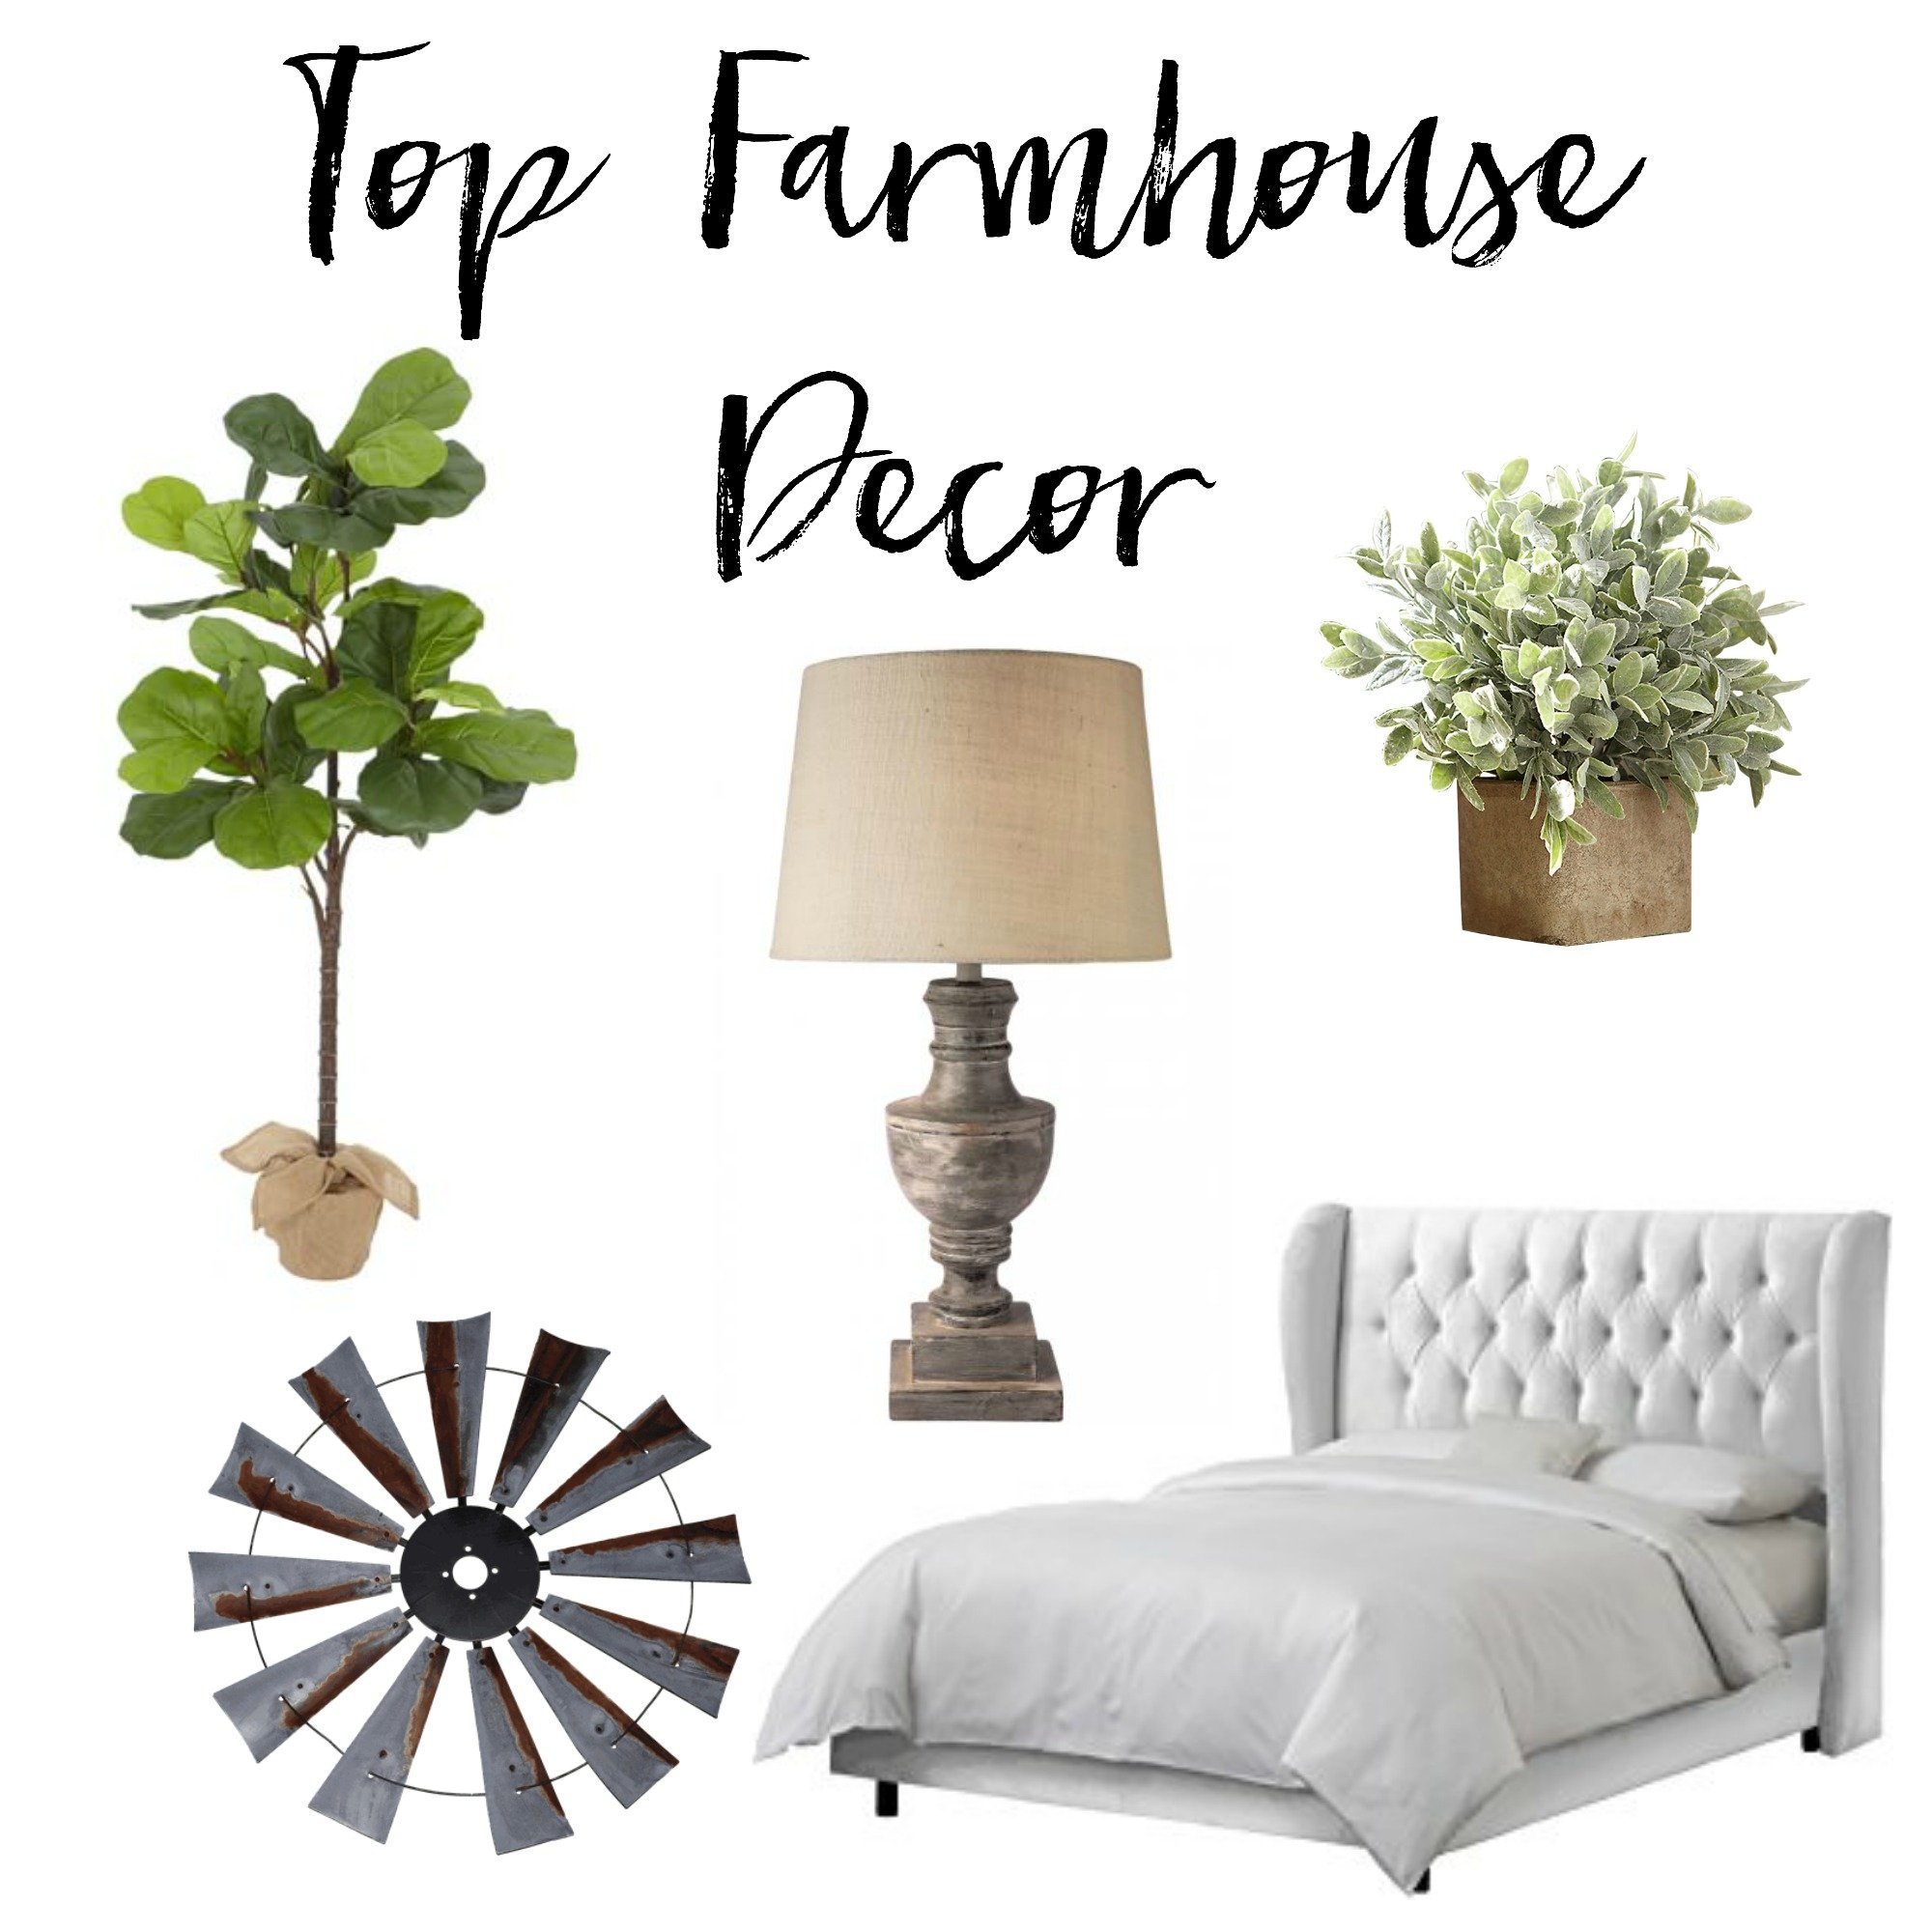 Top Farmhouse Decor That I wish I Could Buy